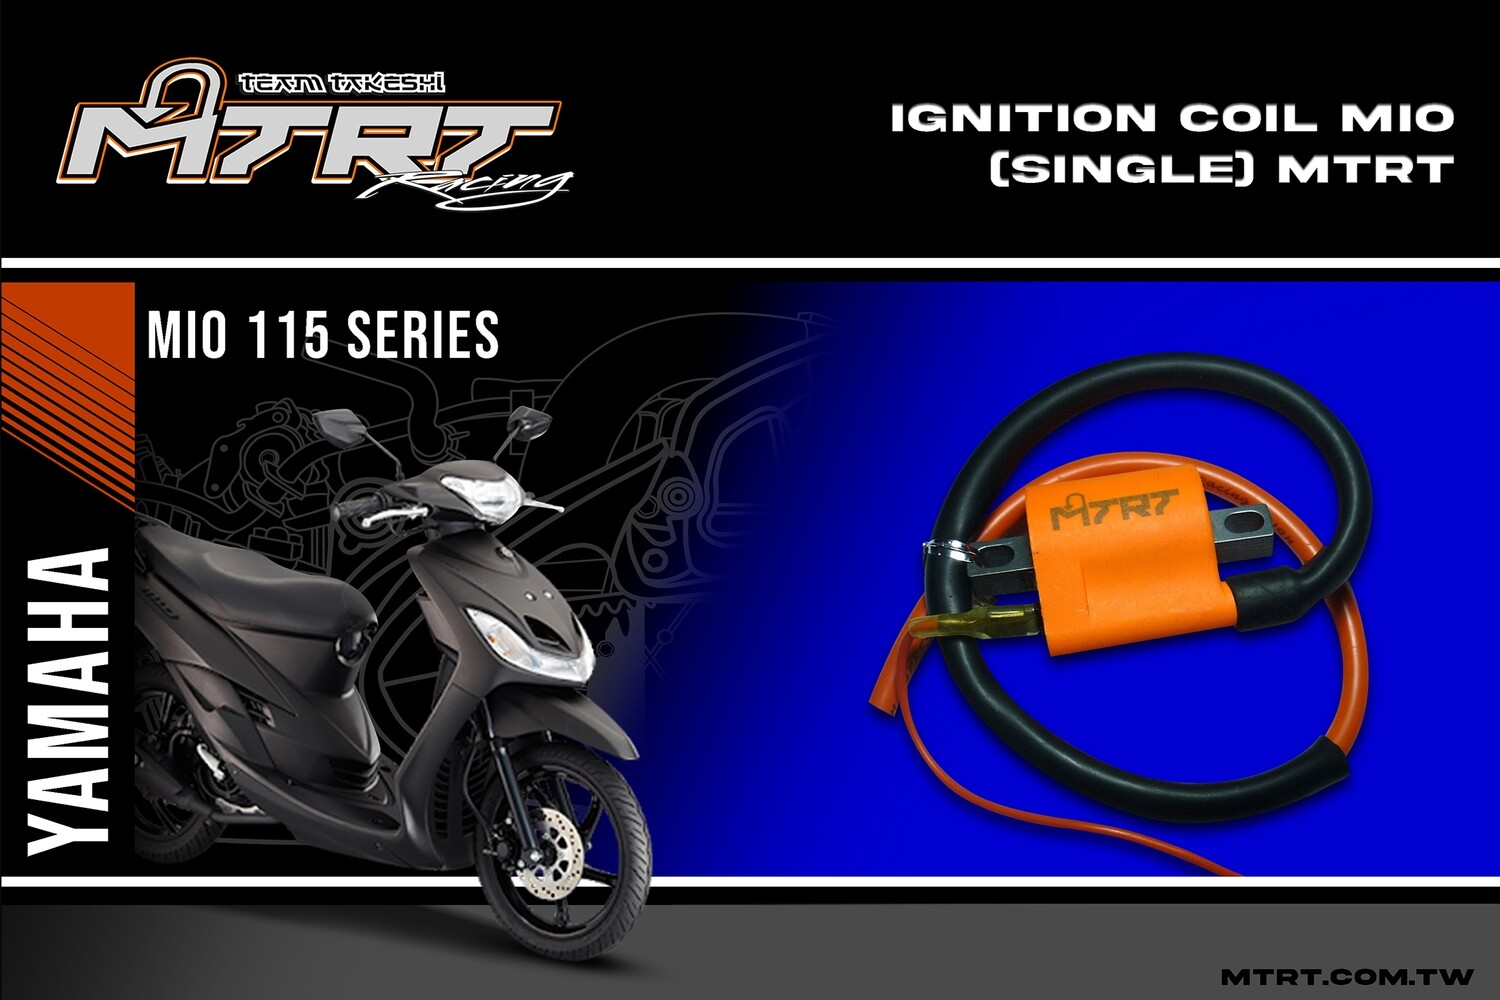 IGNITION COIL MIO (single) MTRT